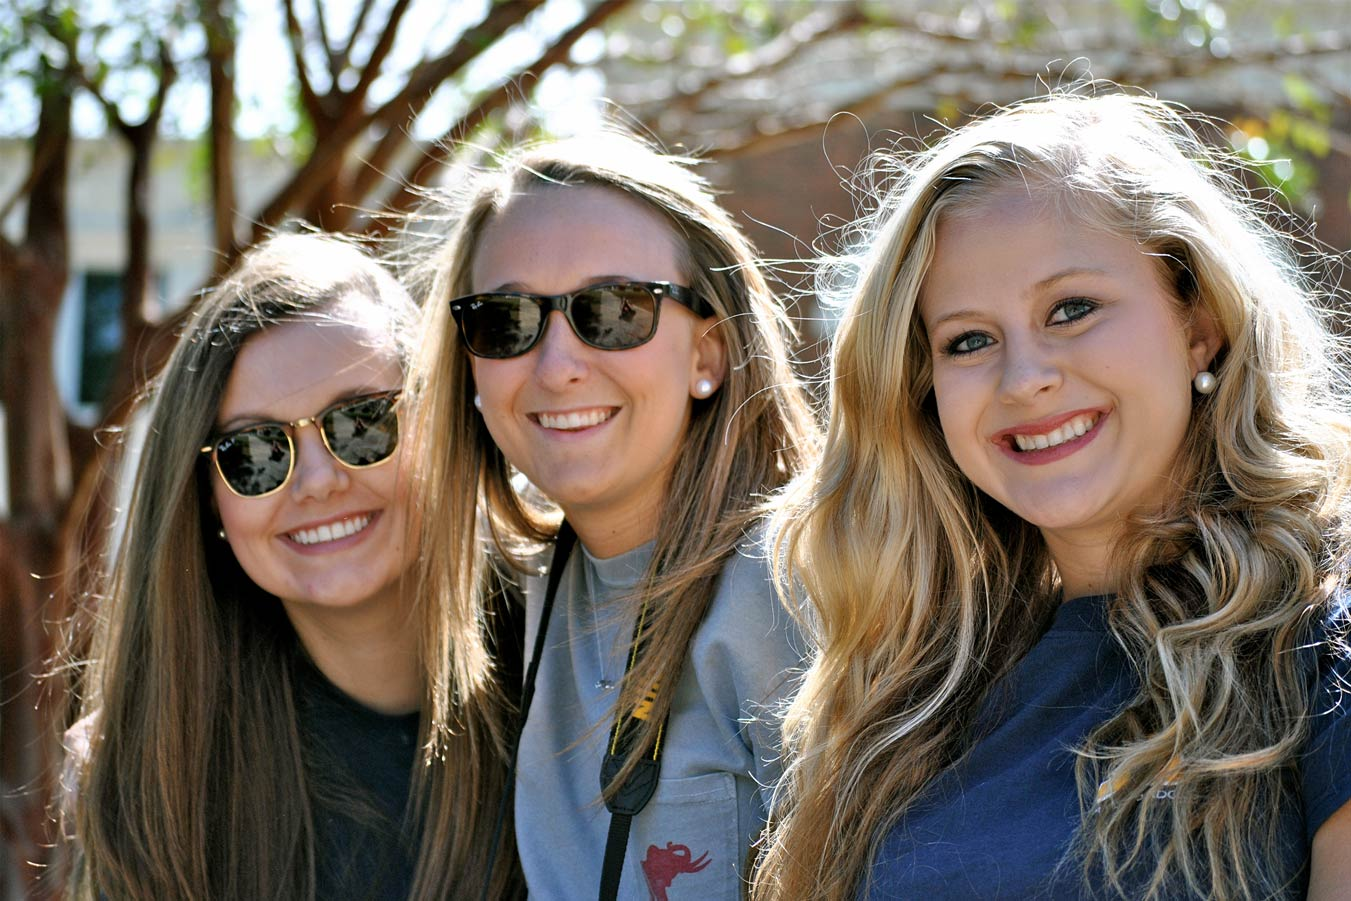 Close-up of three females smiling for a picture outdoors